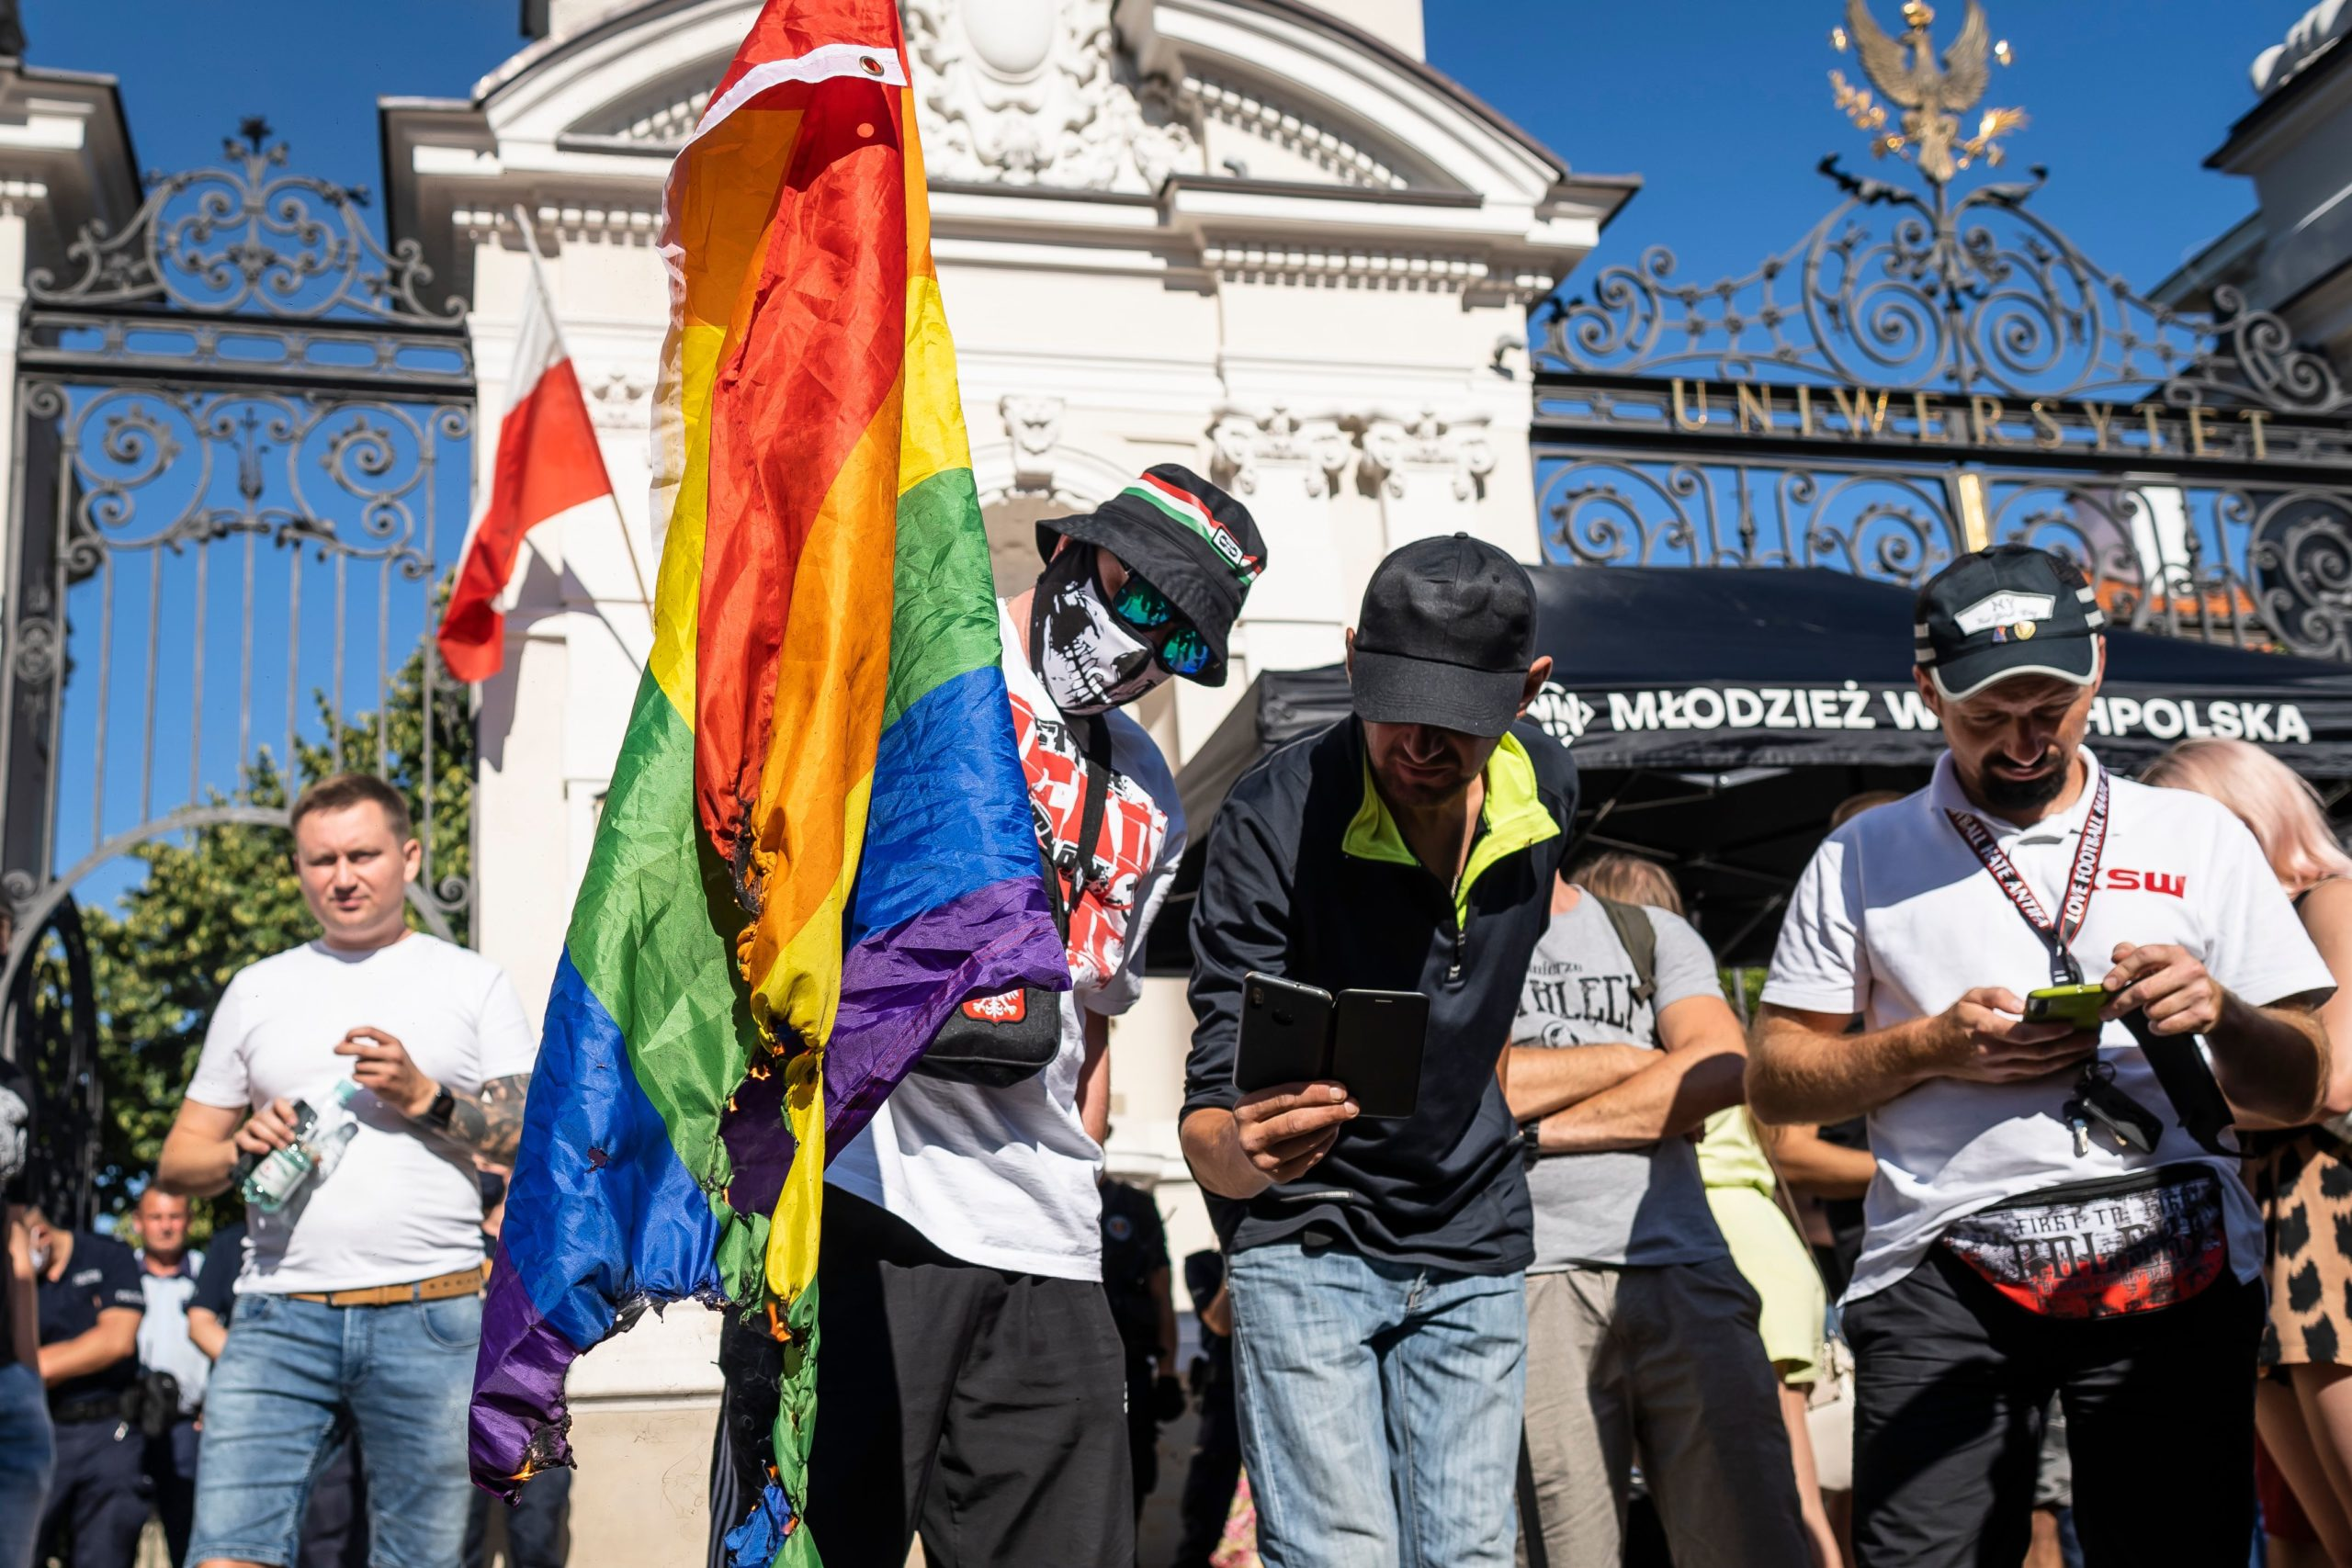 The group succeeded in singing the edges of a rainbow flag